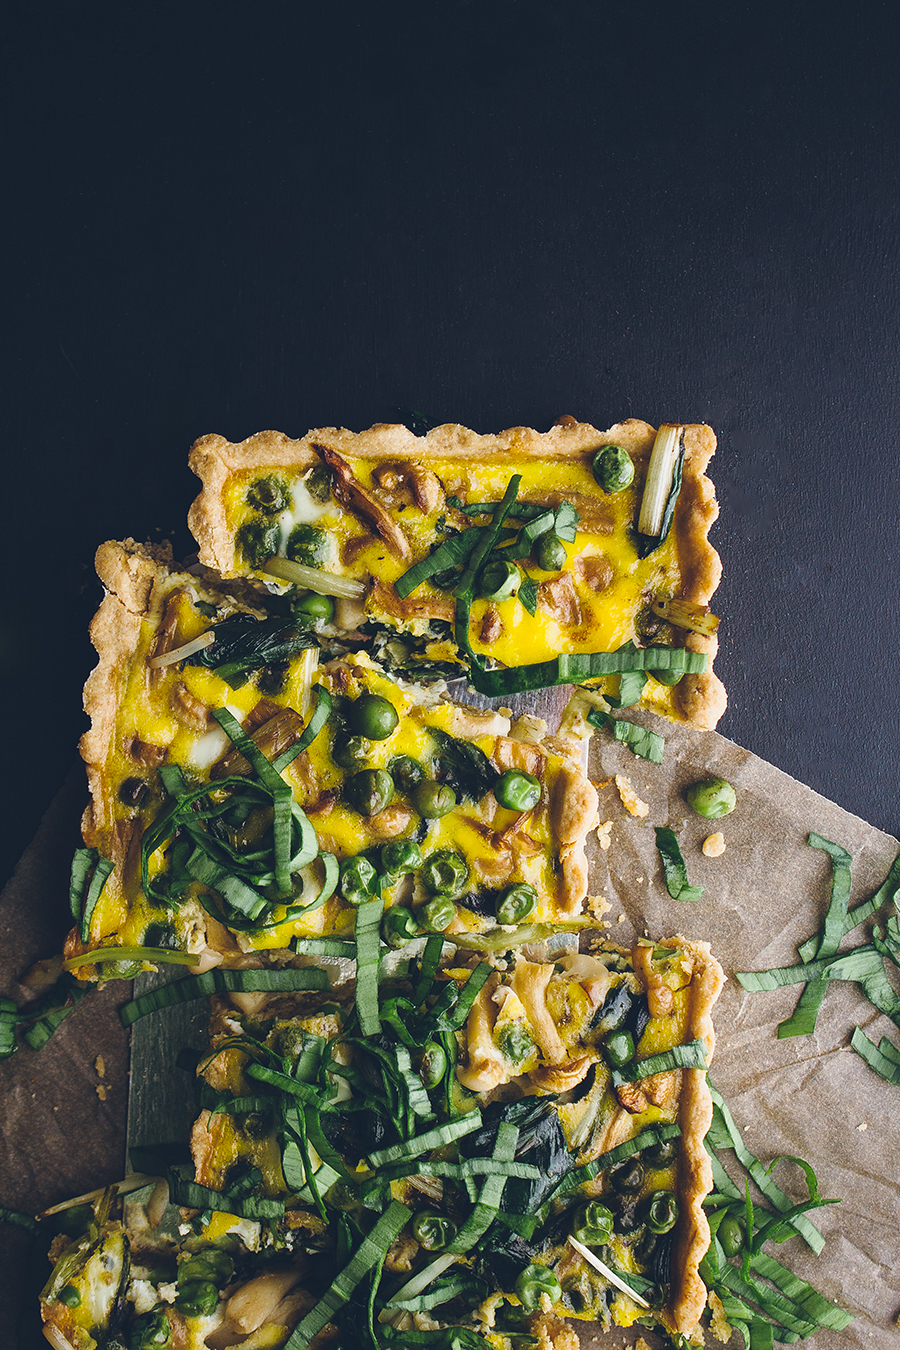 Quiche with vegetables garnished with ramp slices.